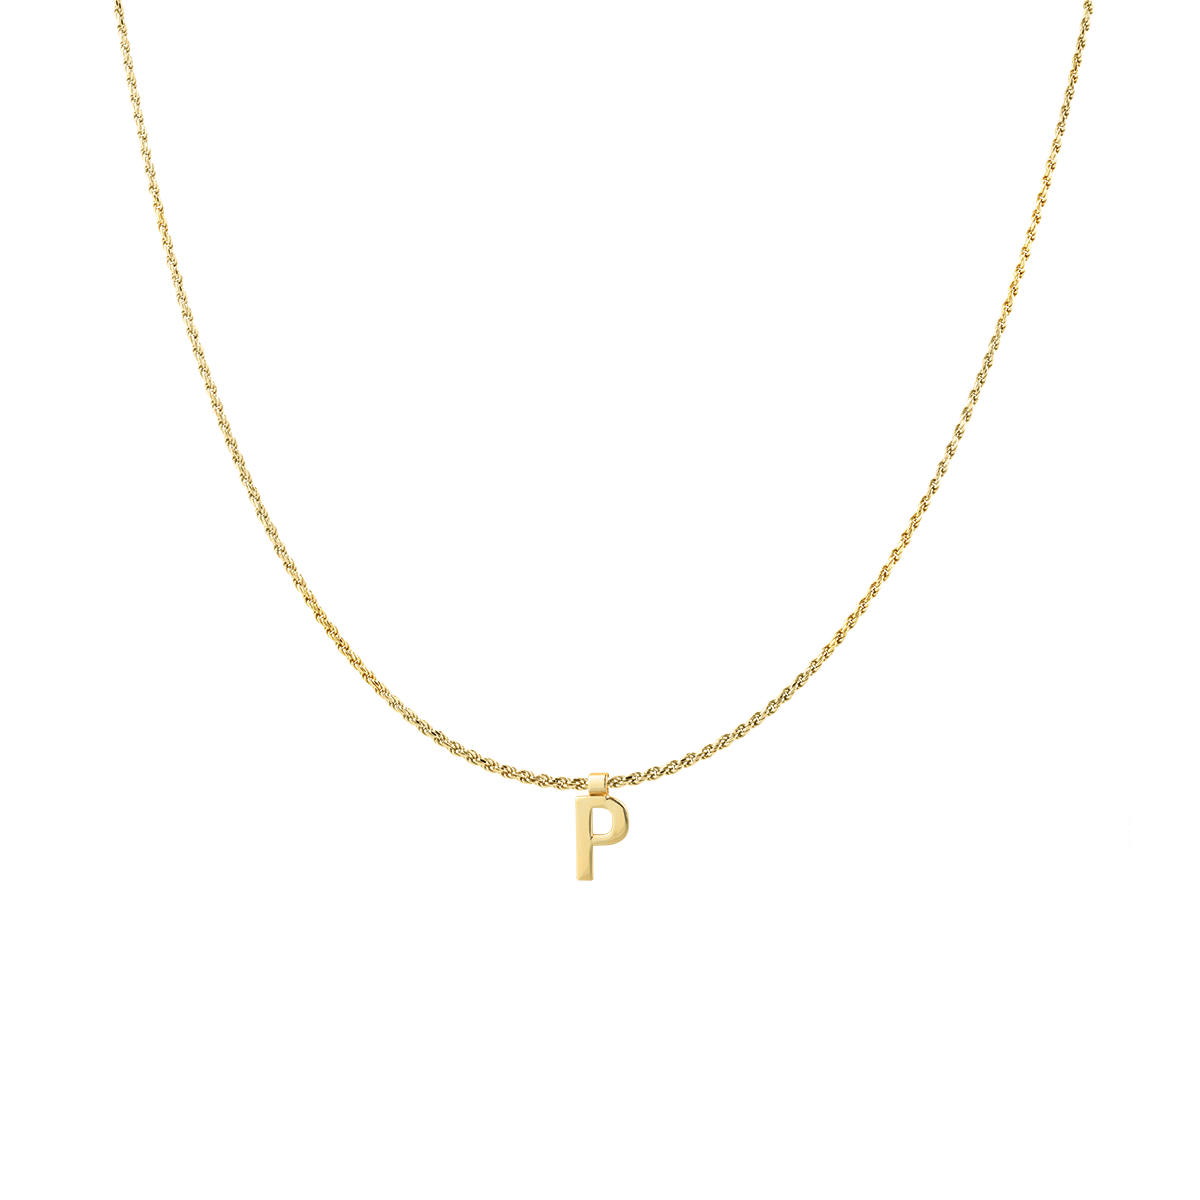 Ruby Rope Letter Necklace gold P